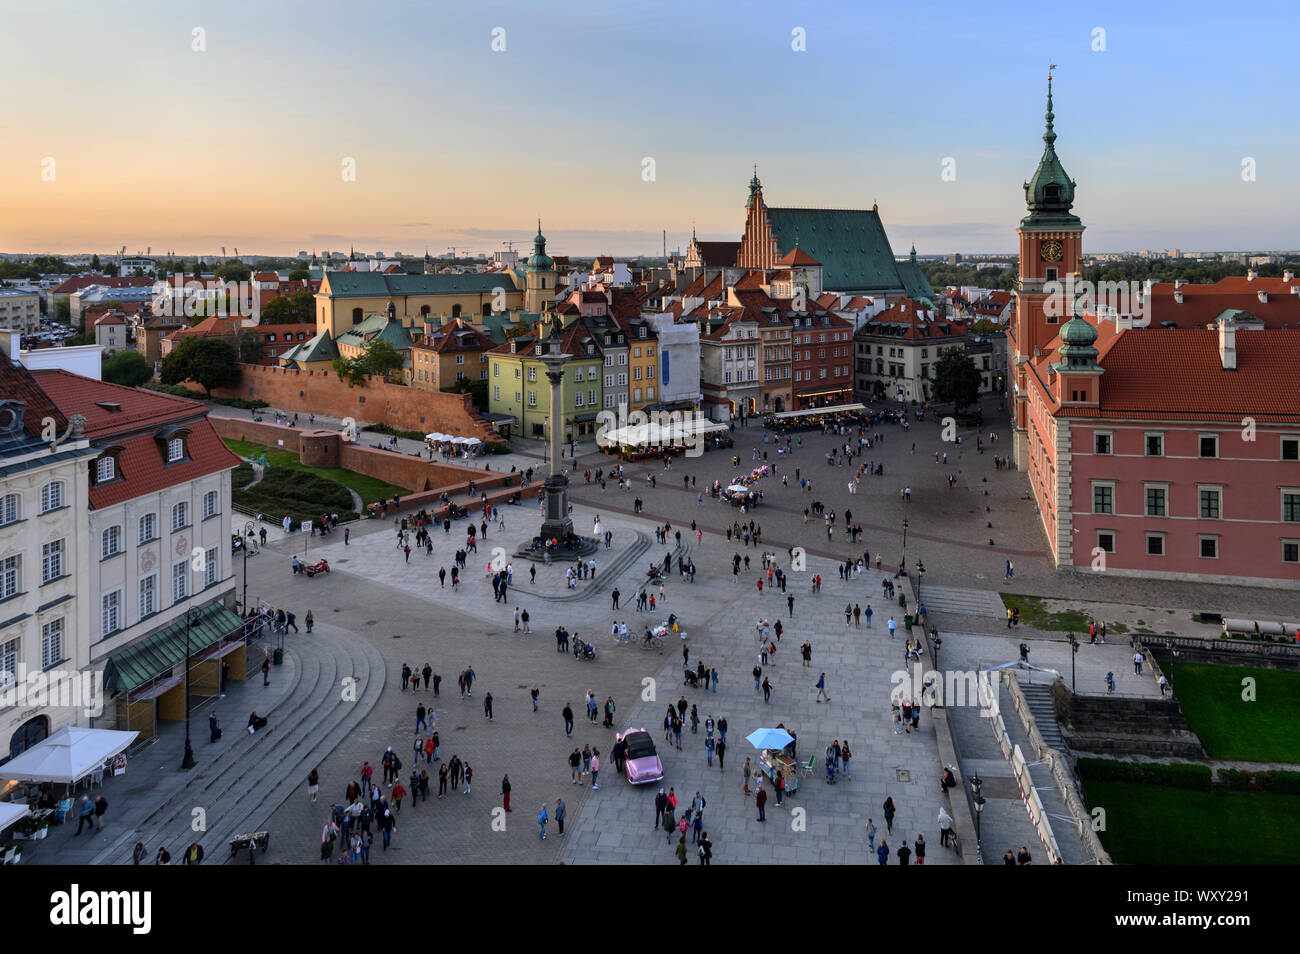 Panorama of Royal Castle and Old Town in Warsaw during sunset, Poland Stock Photo